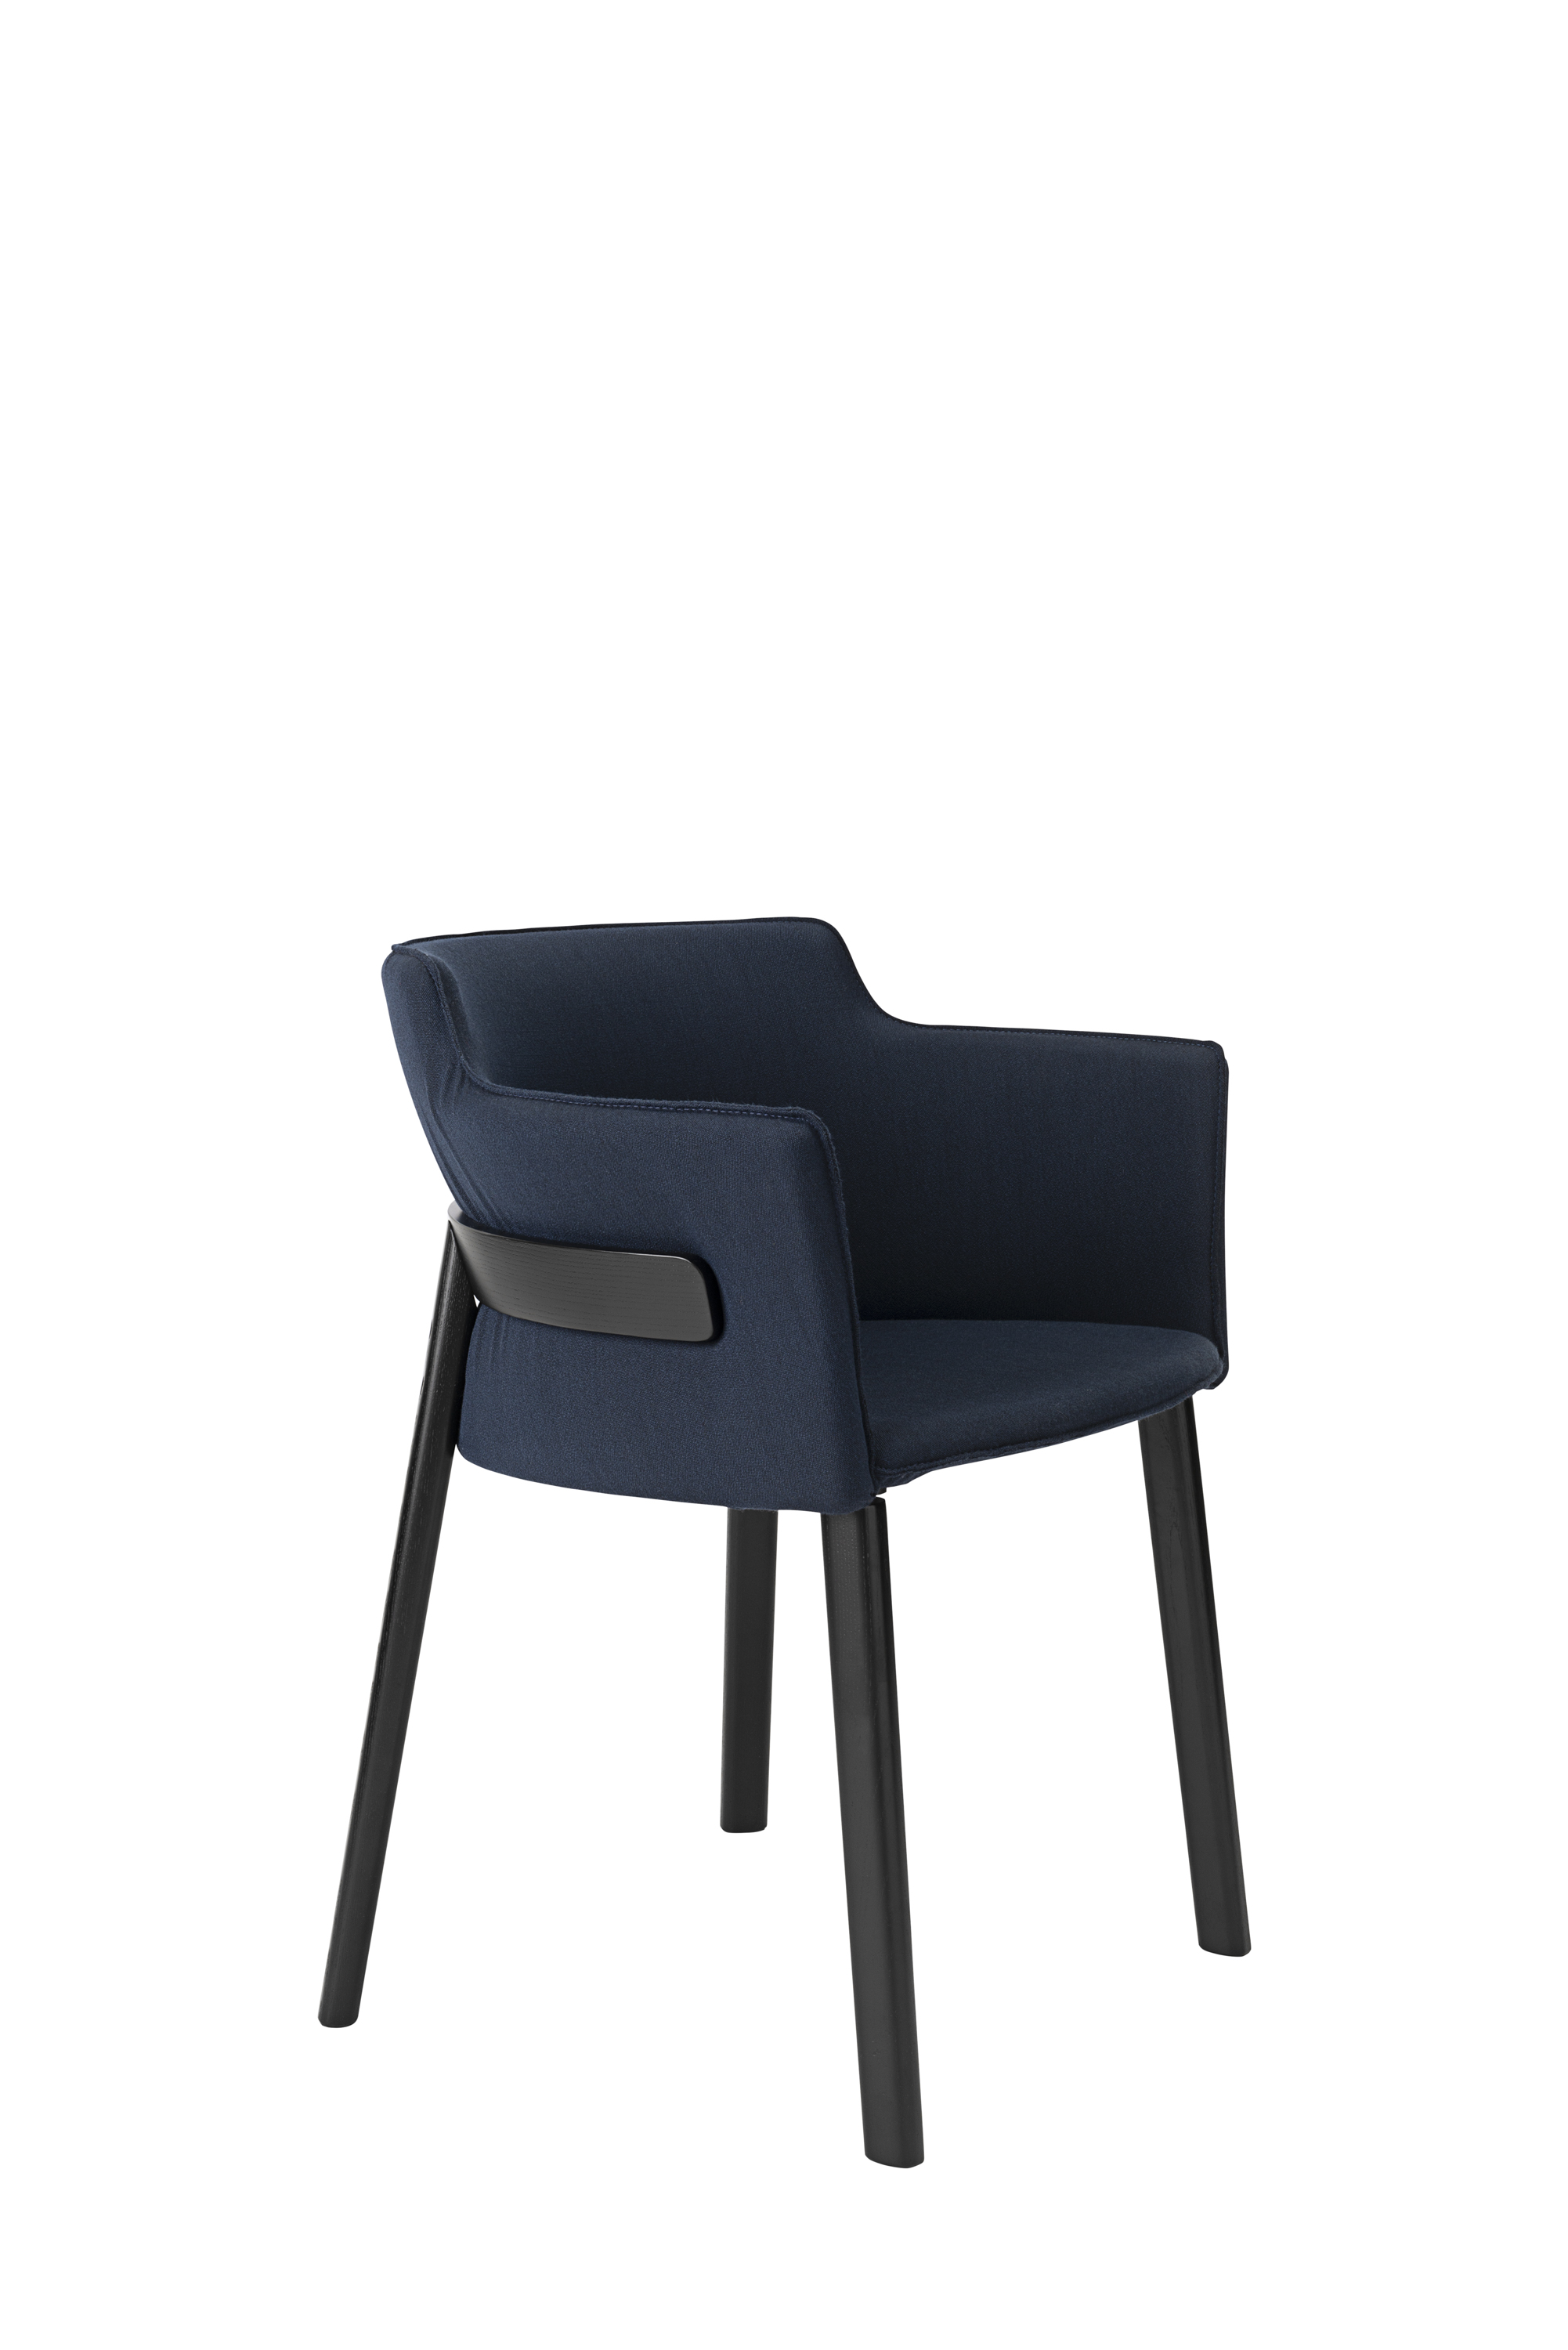 Pince Armchair - This elegant and enveloping armchair combines the tradition of Viennese-style furniture with a contemporary aesthetic. The structure is distinguished for a C-shaped back that encloses the backrest cushions. The wood was bent using the steaming method that evokes the brand's iconic pieces, while interpreting them in a modern way. The frame is entirely cushioned for extra comfort and covered in fabric. | Matter of Stuff